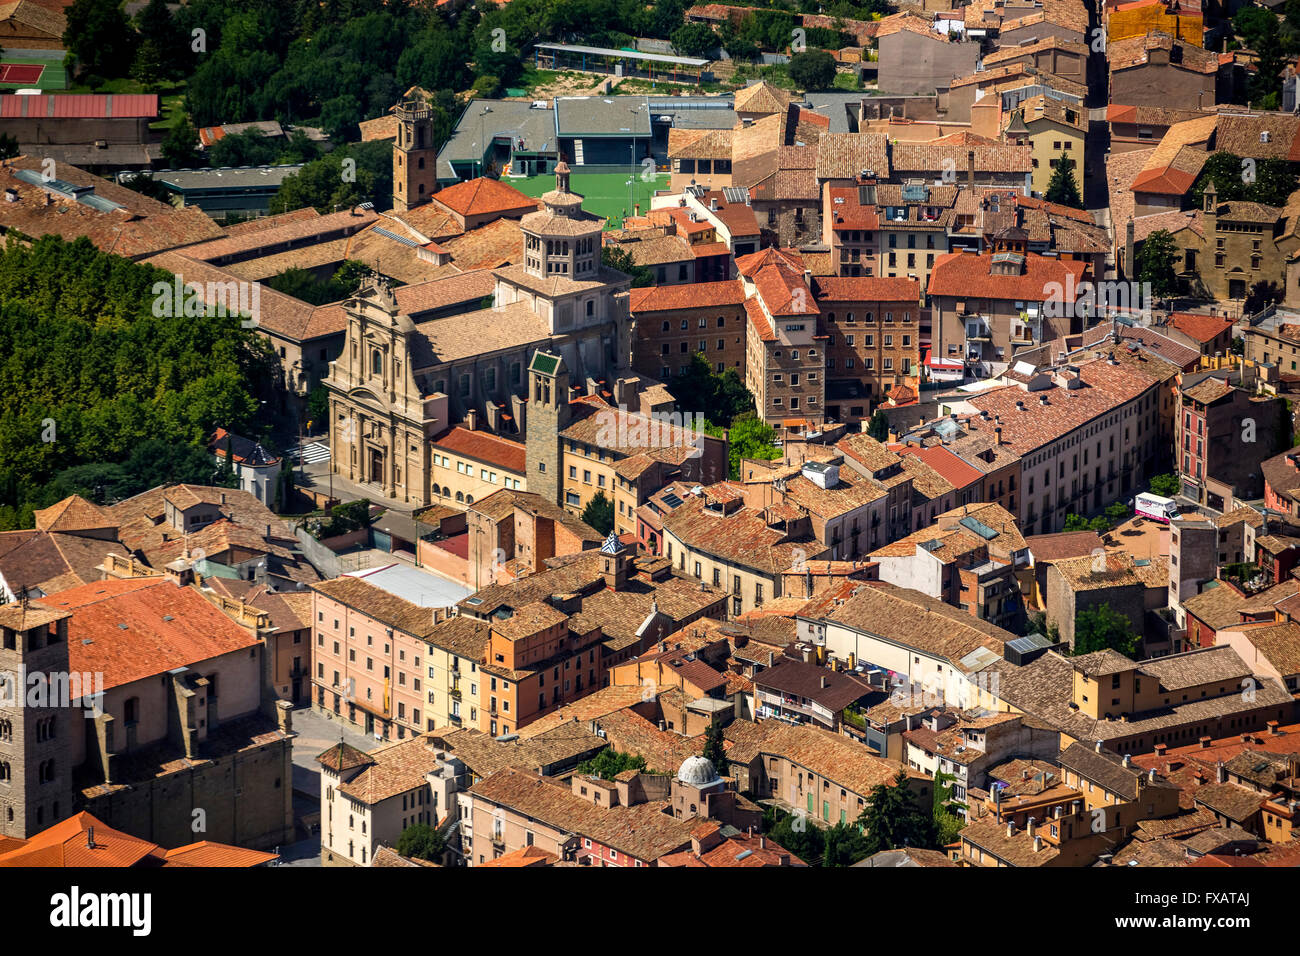 Old Town, Sant Antoni de Vic, Vic, Costa Brava, Catalonia, Spain Europe, aerial view, birds-eyes view, aerial view, - Stock Image